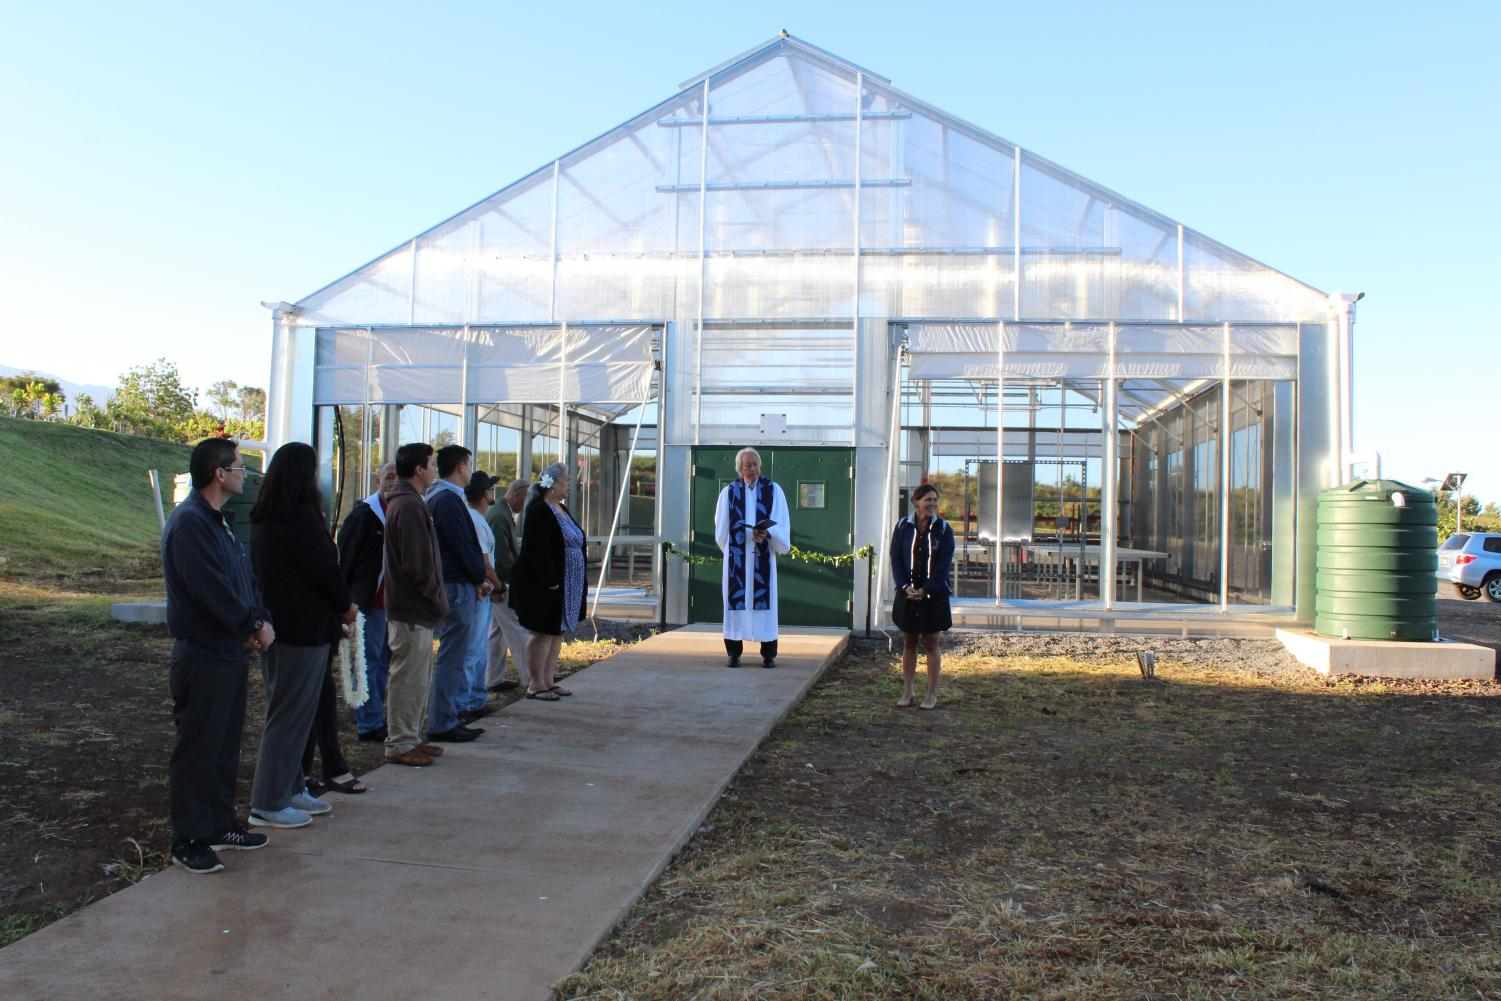 Staff, groundskeepers, administrators, and haumāna witness the opening of Hale Uliulimau. The ceremony included an explanation of the name, a blessing and the cutting of a maile lei.